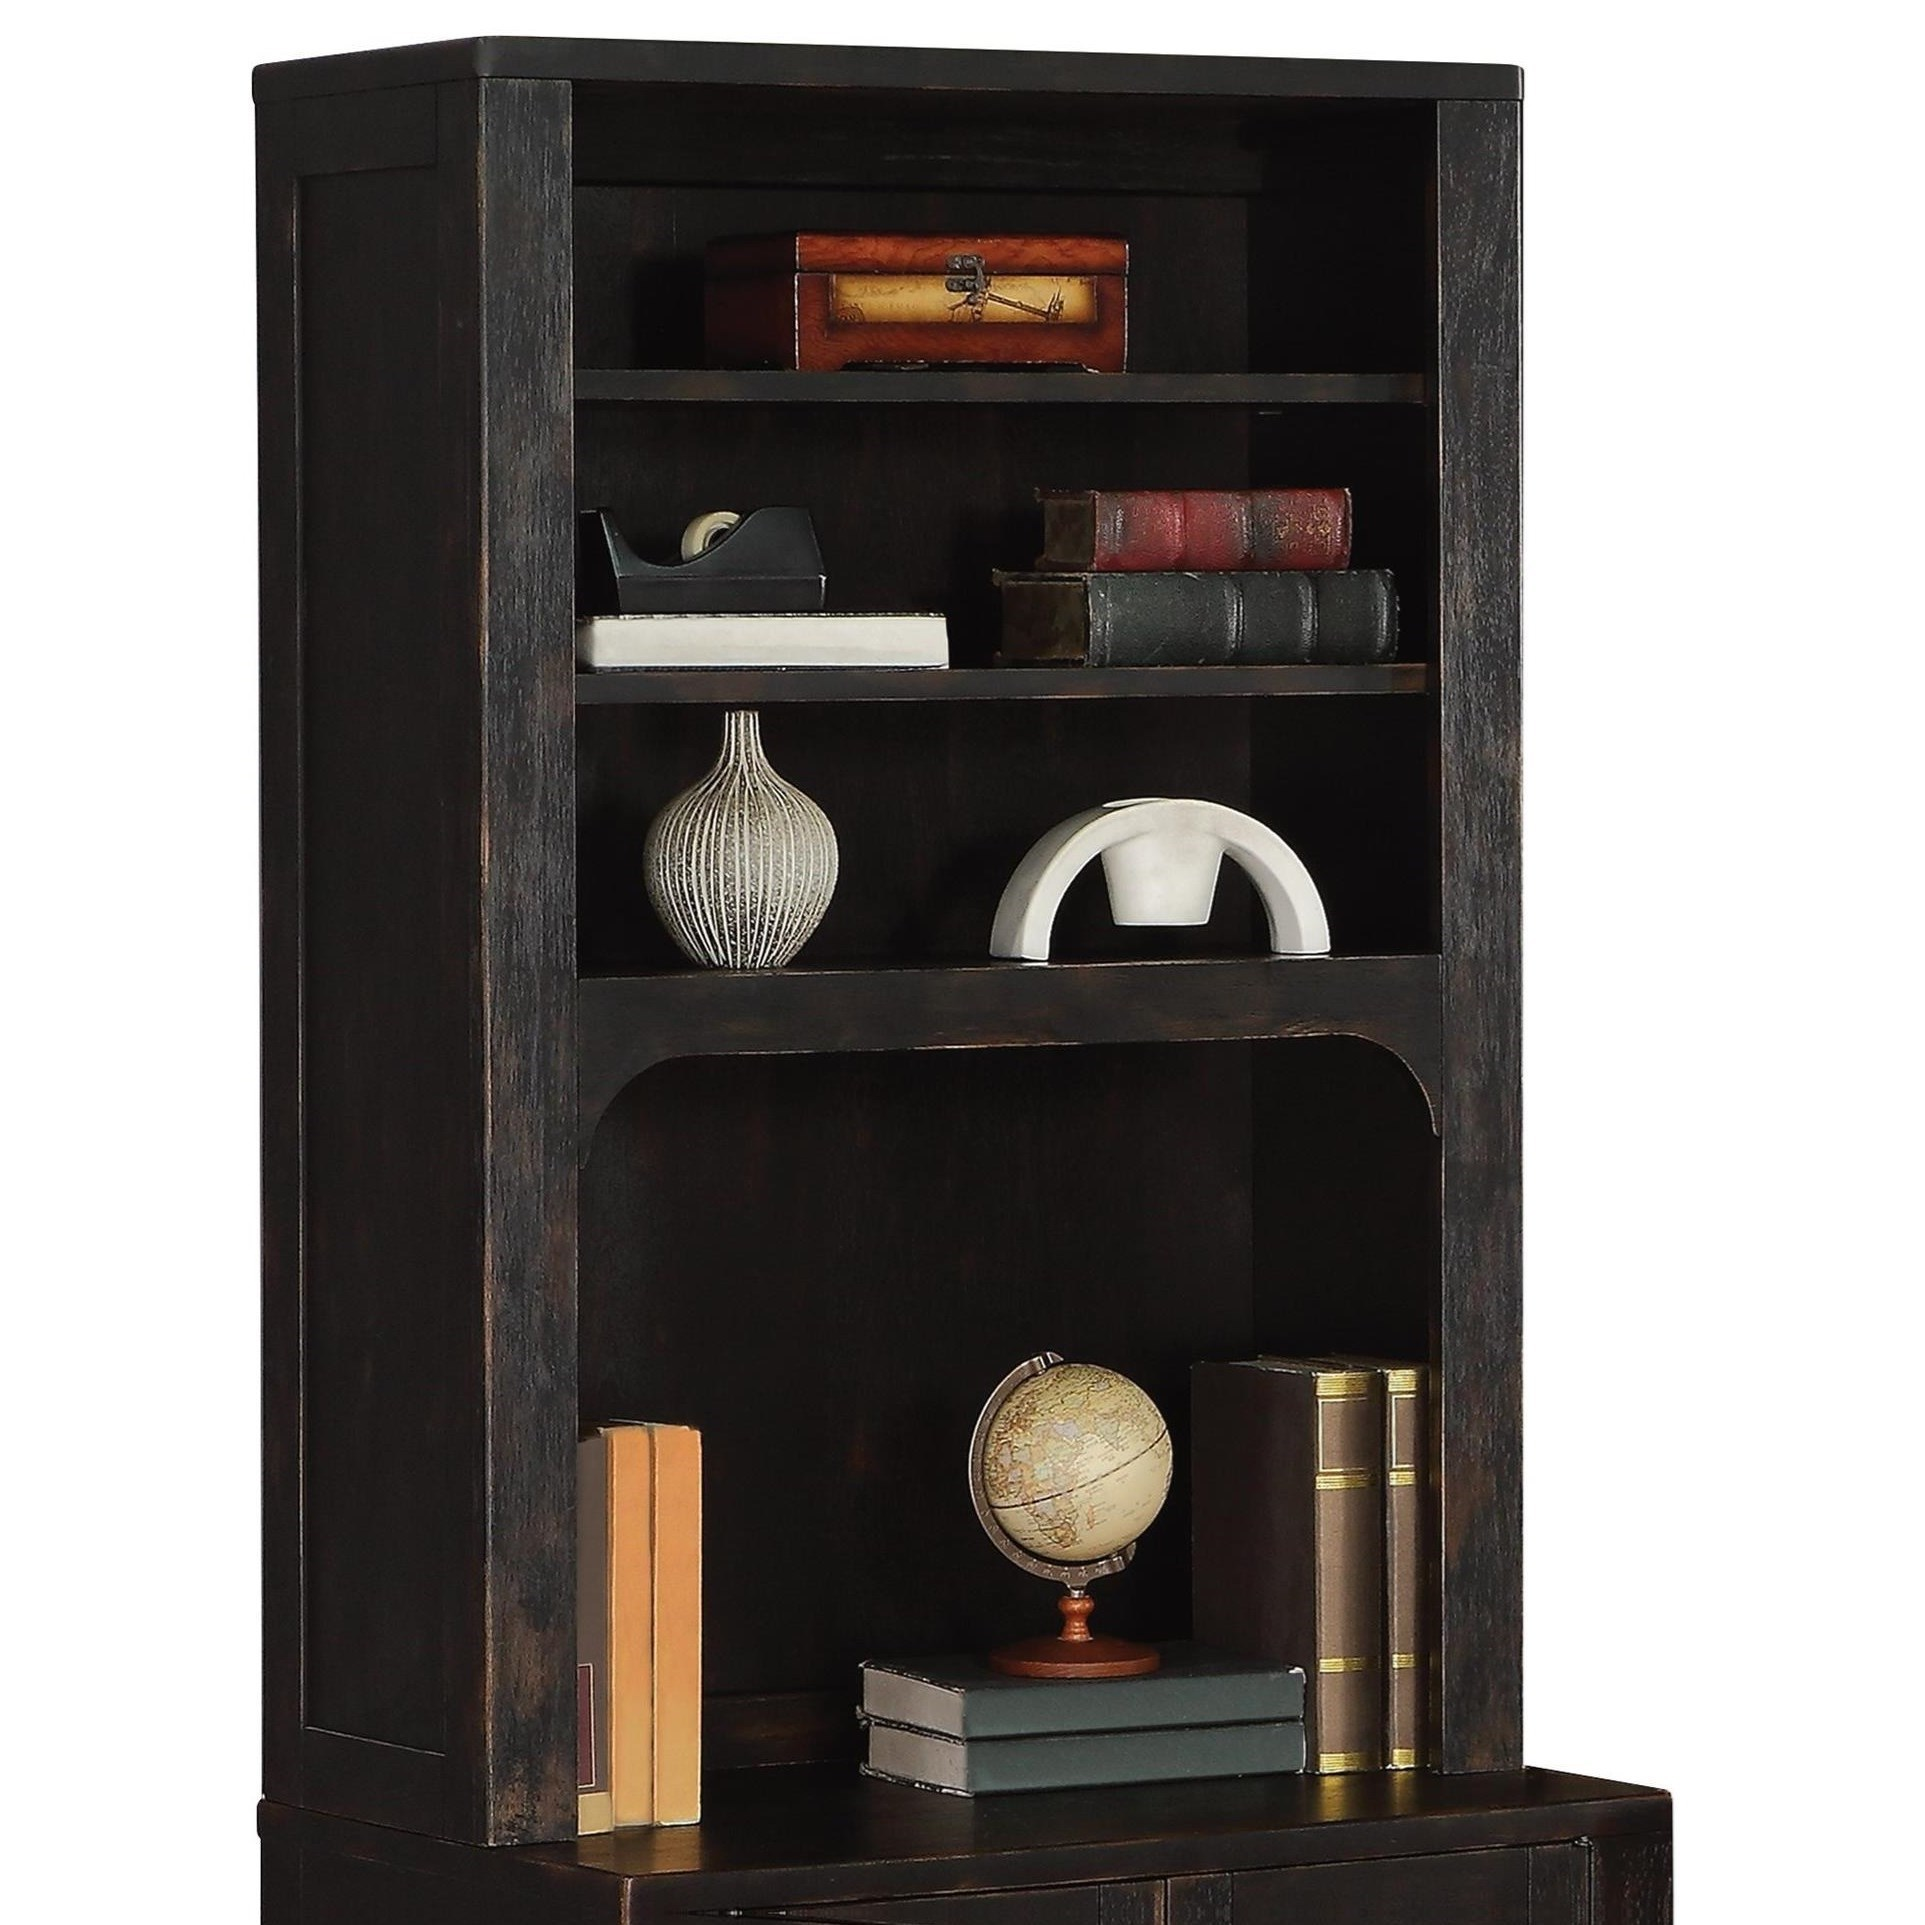 Flexsteel wynwood collection homestead w1337 746 rustic for City furniture in homestead